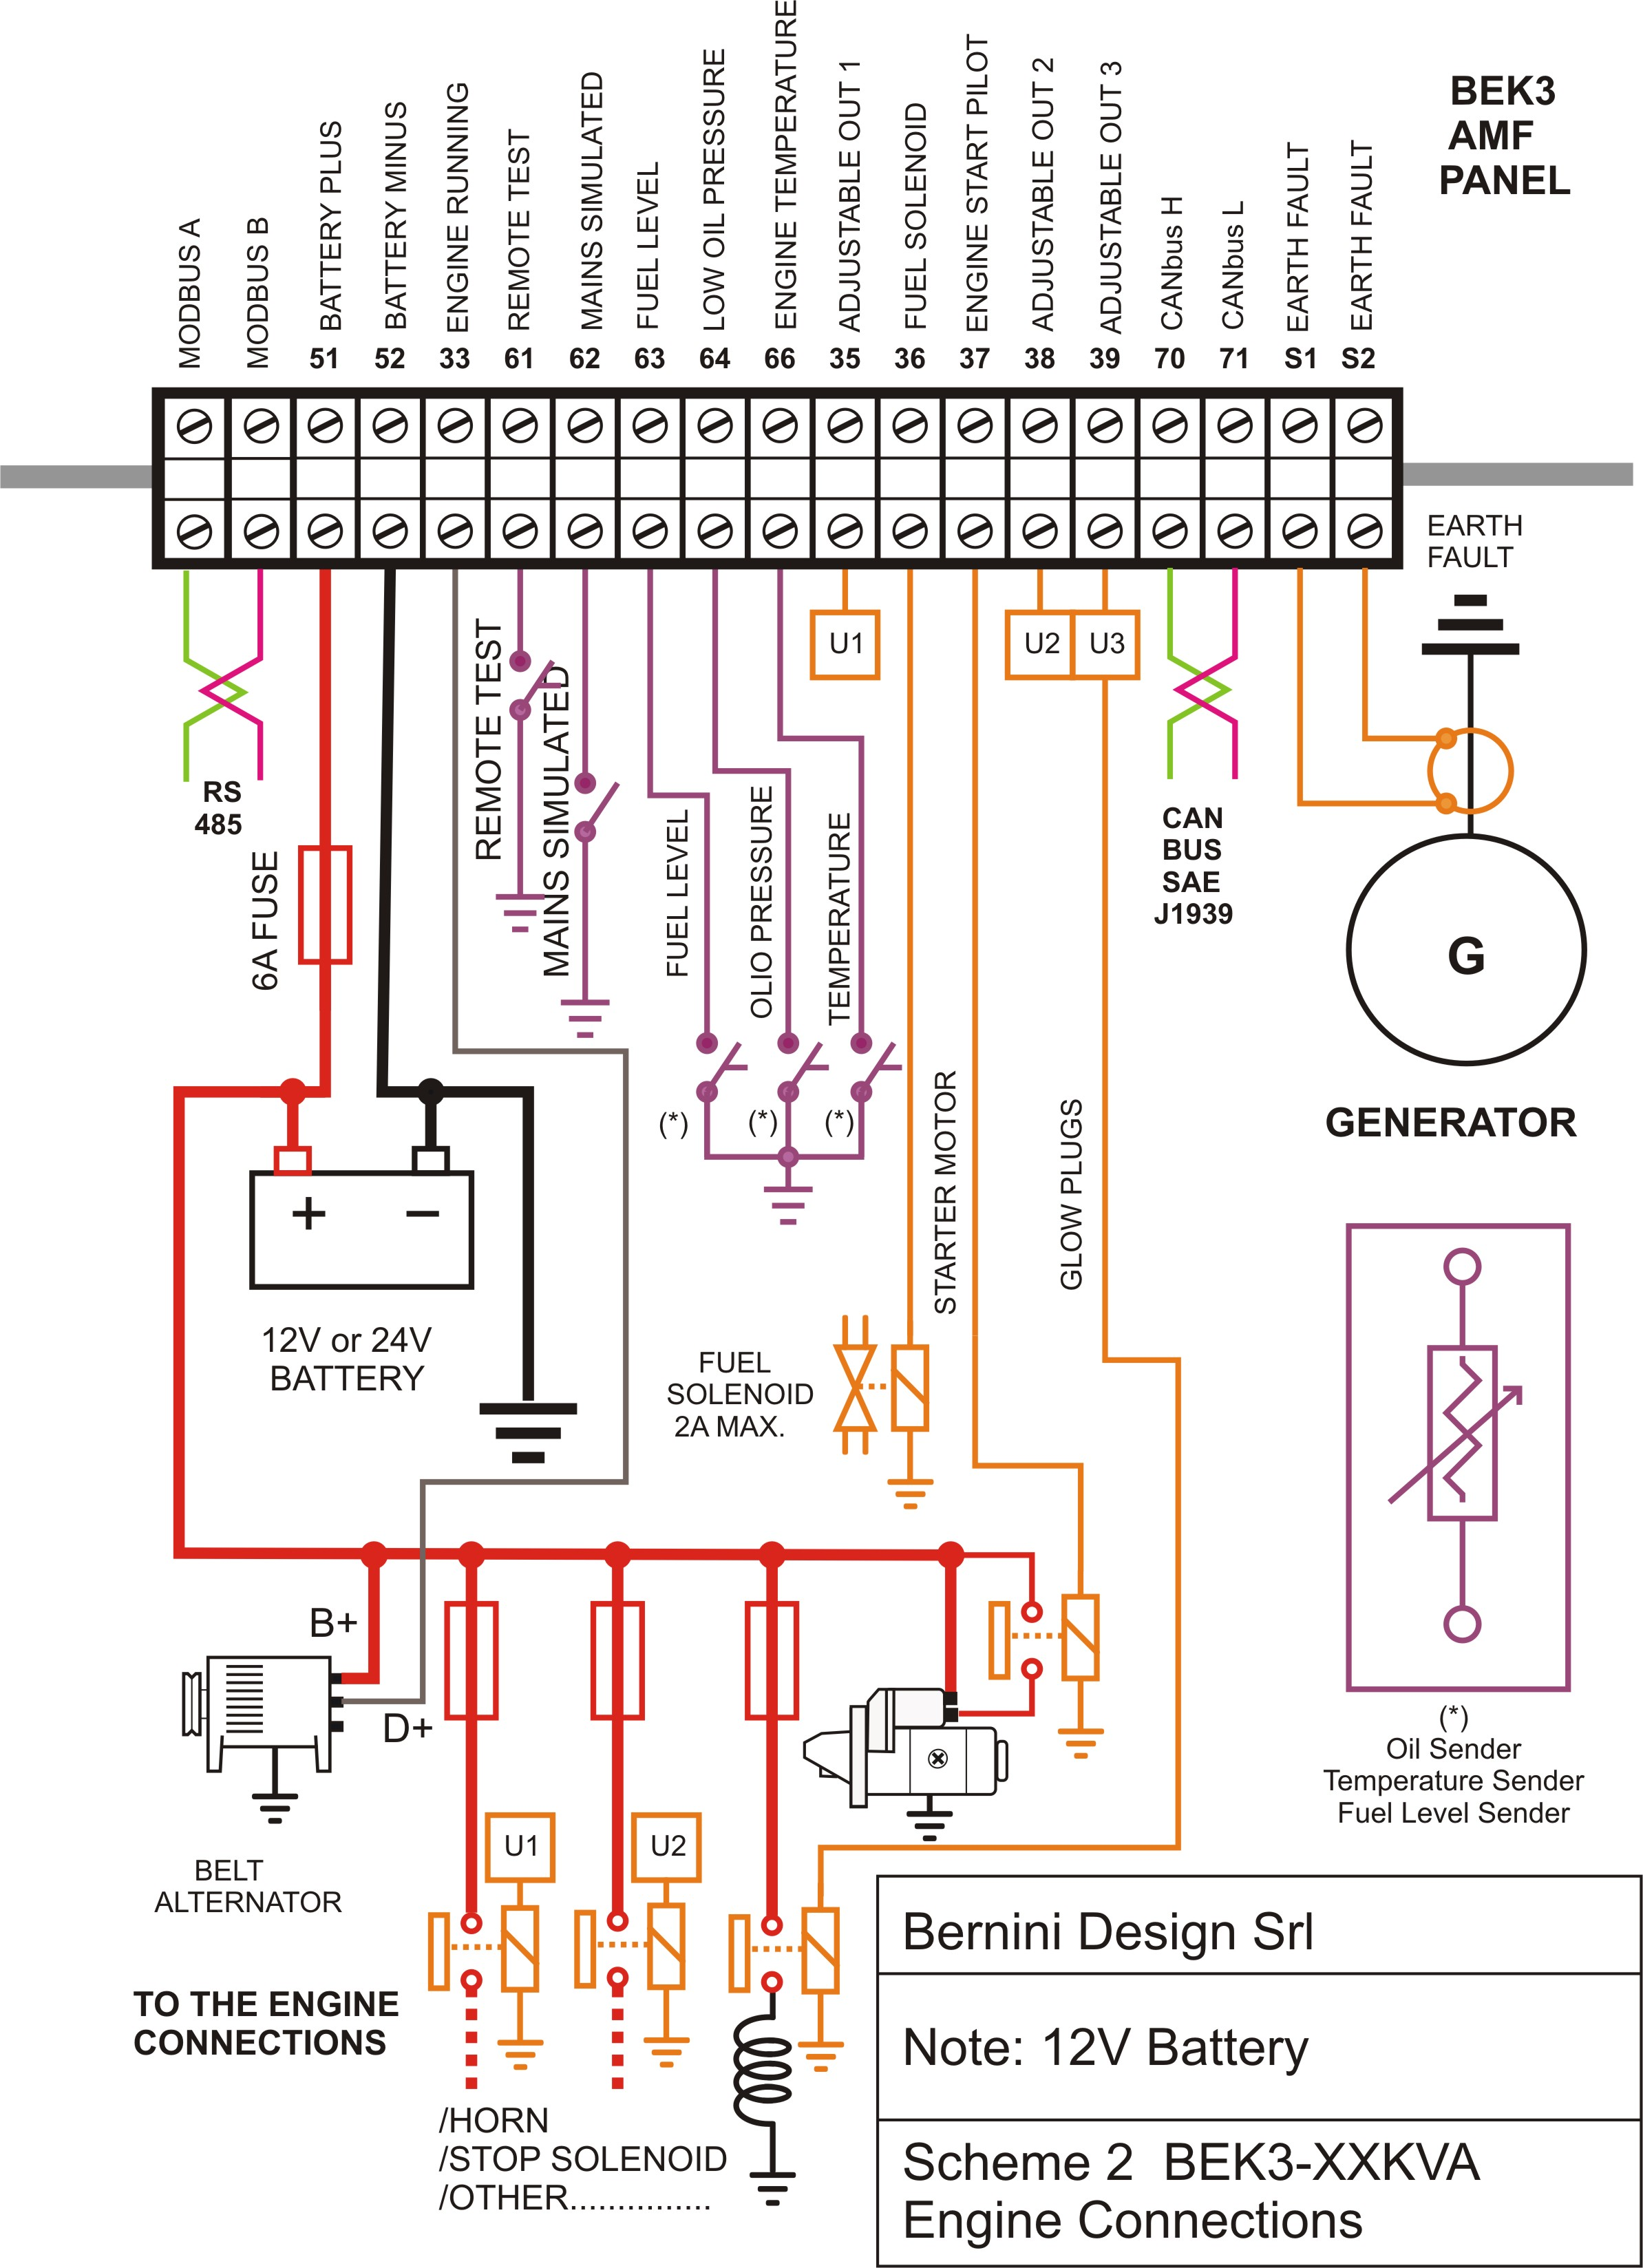 Diesel Generator Control Panel Wiring Diagram Engine Connections wiring diagram tool wiring color coding \u2022 free wiring diagrams 30 Amp Relay Wiring Diagram at bayanpartner.co